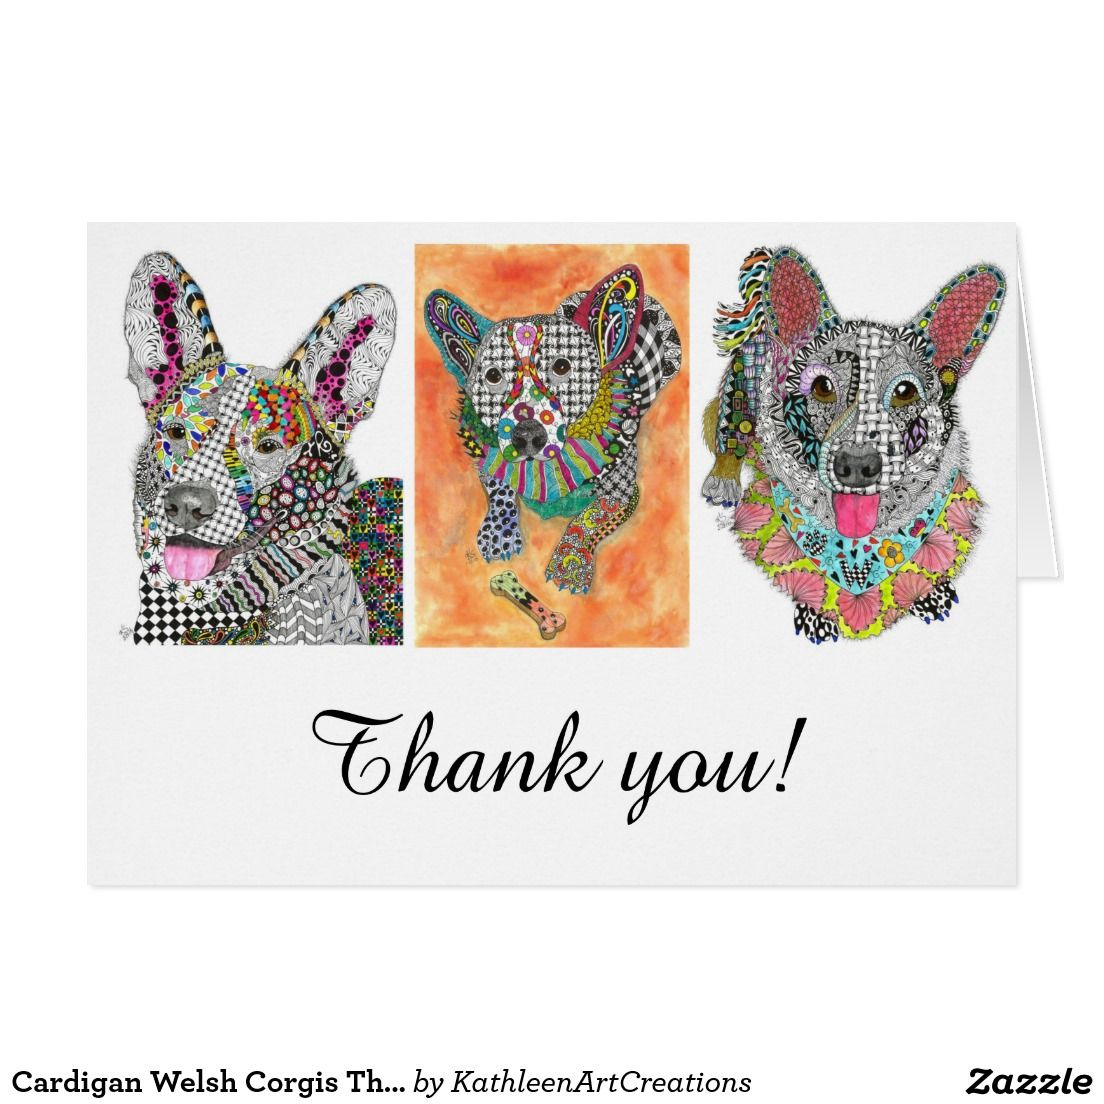 Cardigan welsh corgis thank you greeting card cardigans thank you cardigan welsh corgis thank you greeting card m4hsunfo Images